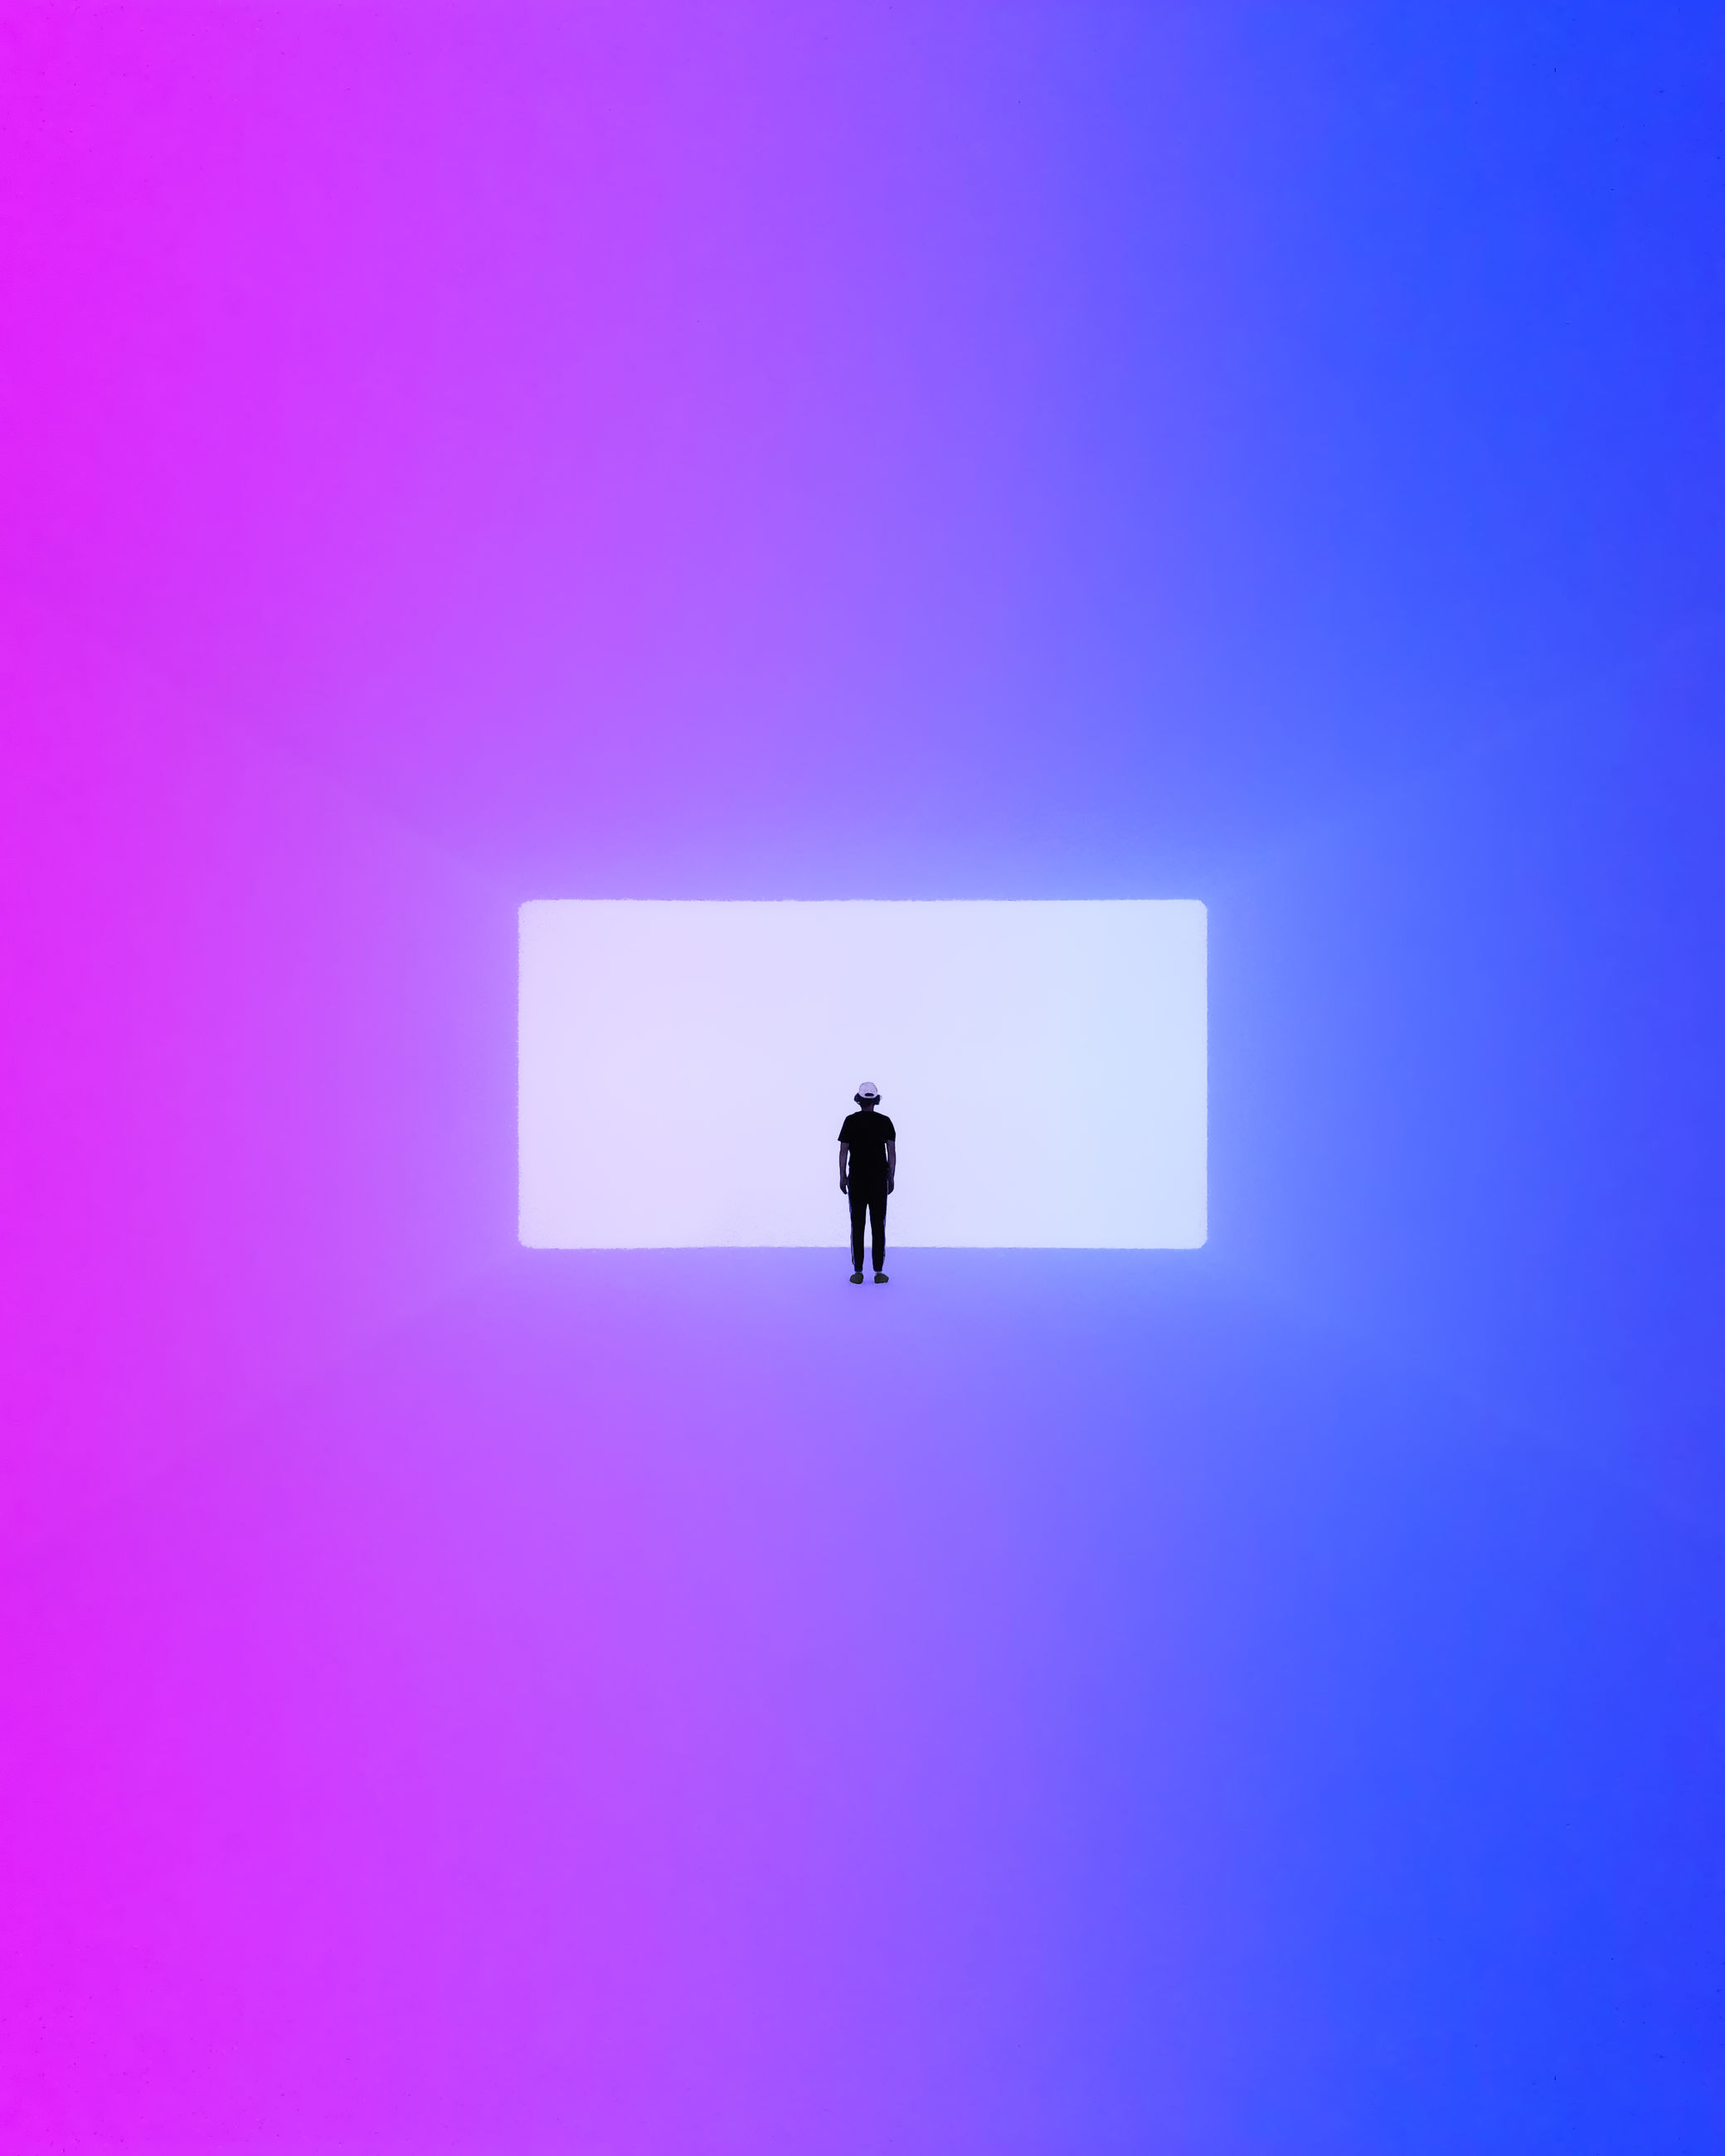 one person, blue, copy space, indoors, day, nature, sign, colored background, cut out, studio shot, communication, architecture, pink color, animal wildlife, purple